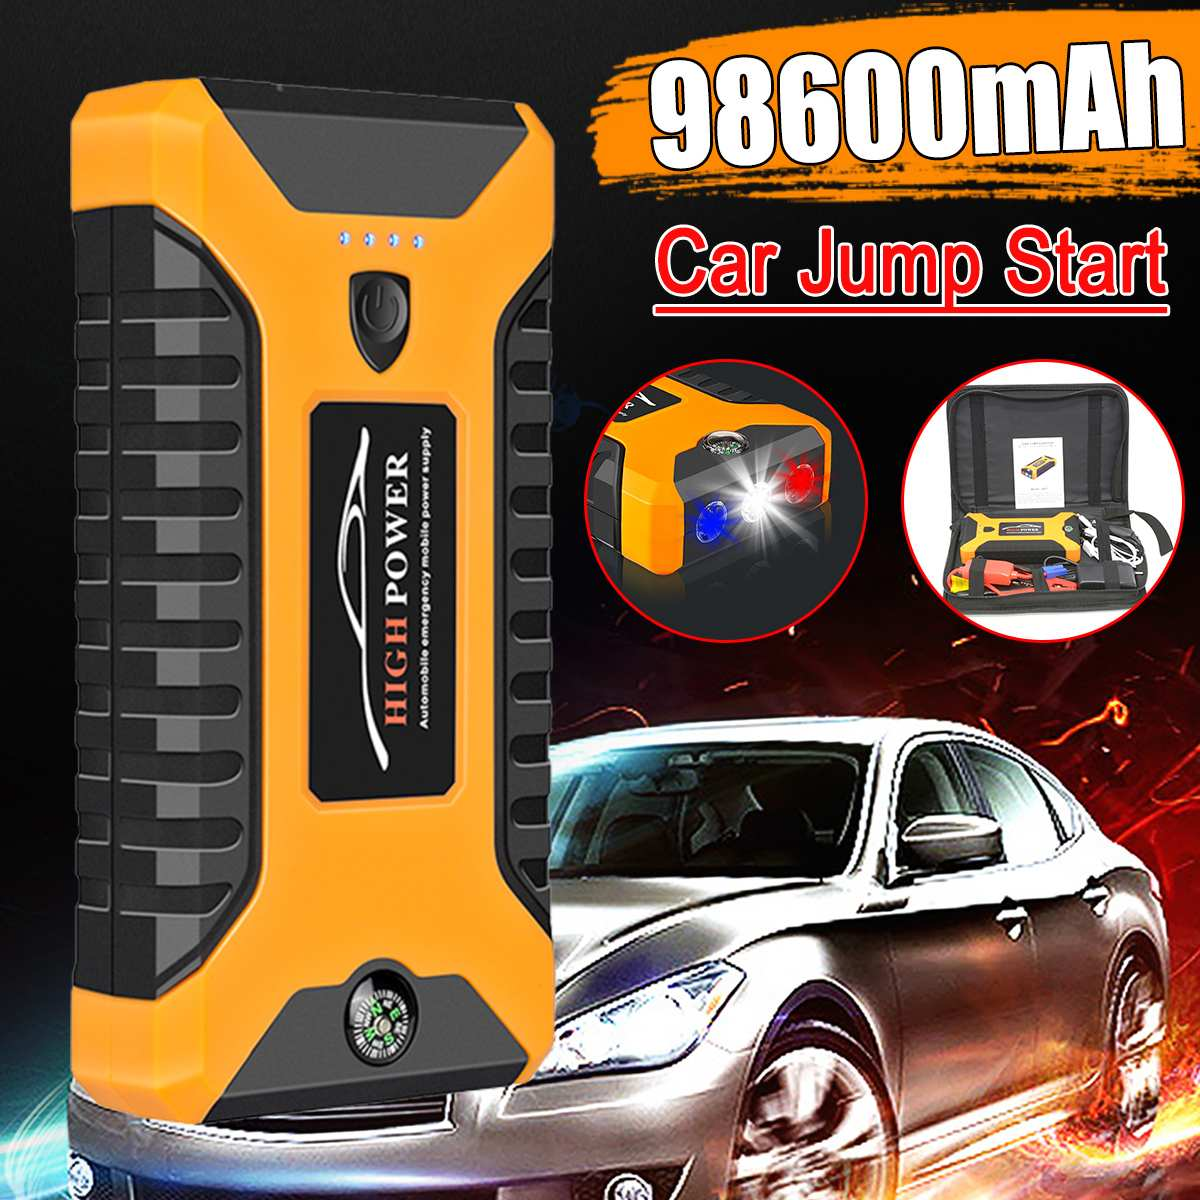 98600mAh High Power <font><b>Car</b></font> Jump Starter 12V Portable Starting Device Power Bank <font><b>Car</b></font> <font><b>Charger</b></font> For <font><b>Car</b></font> <font><b>Battery</b></font> Booster Buster 4 USB image